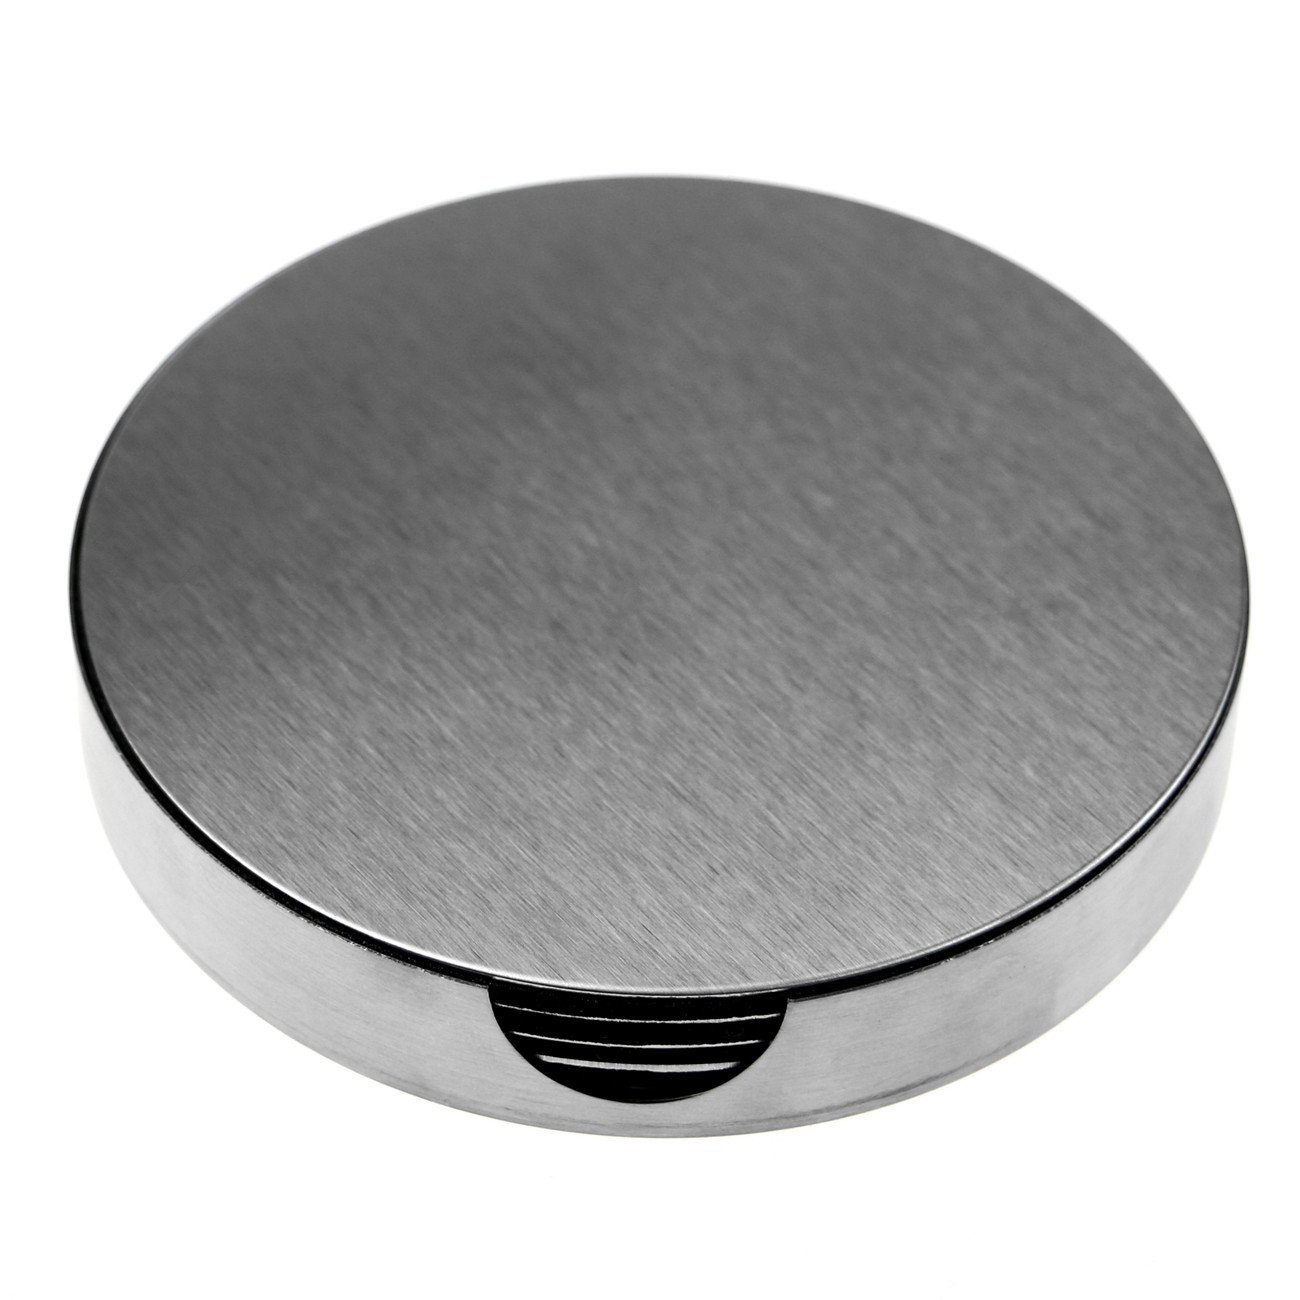 SINDBIN 6pc Stainless Steel Drink Coasters with Holder, Table Coasters for Glasses, Bar Drinks, Mugs, Coffee Cups